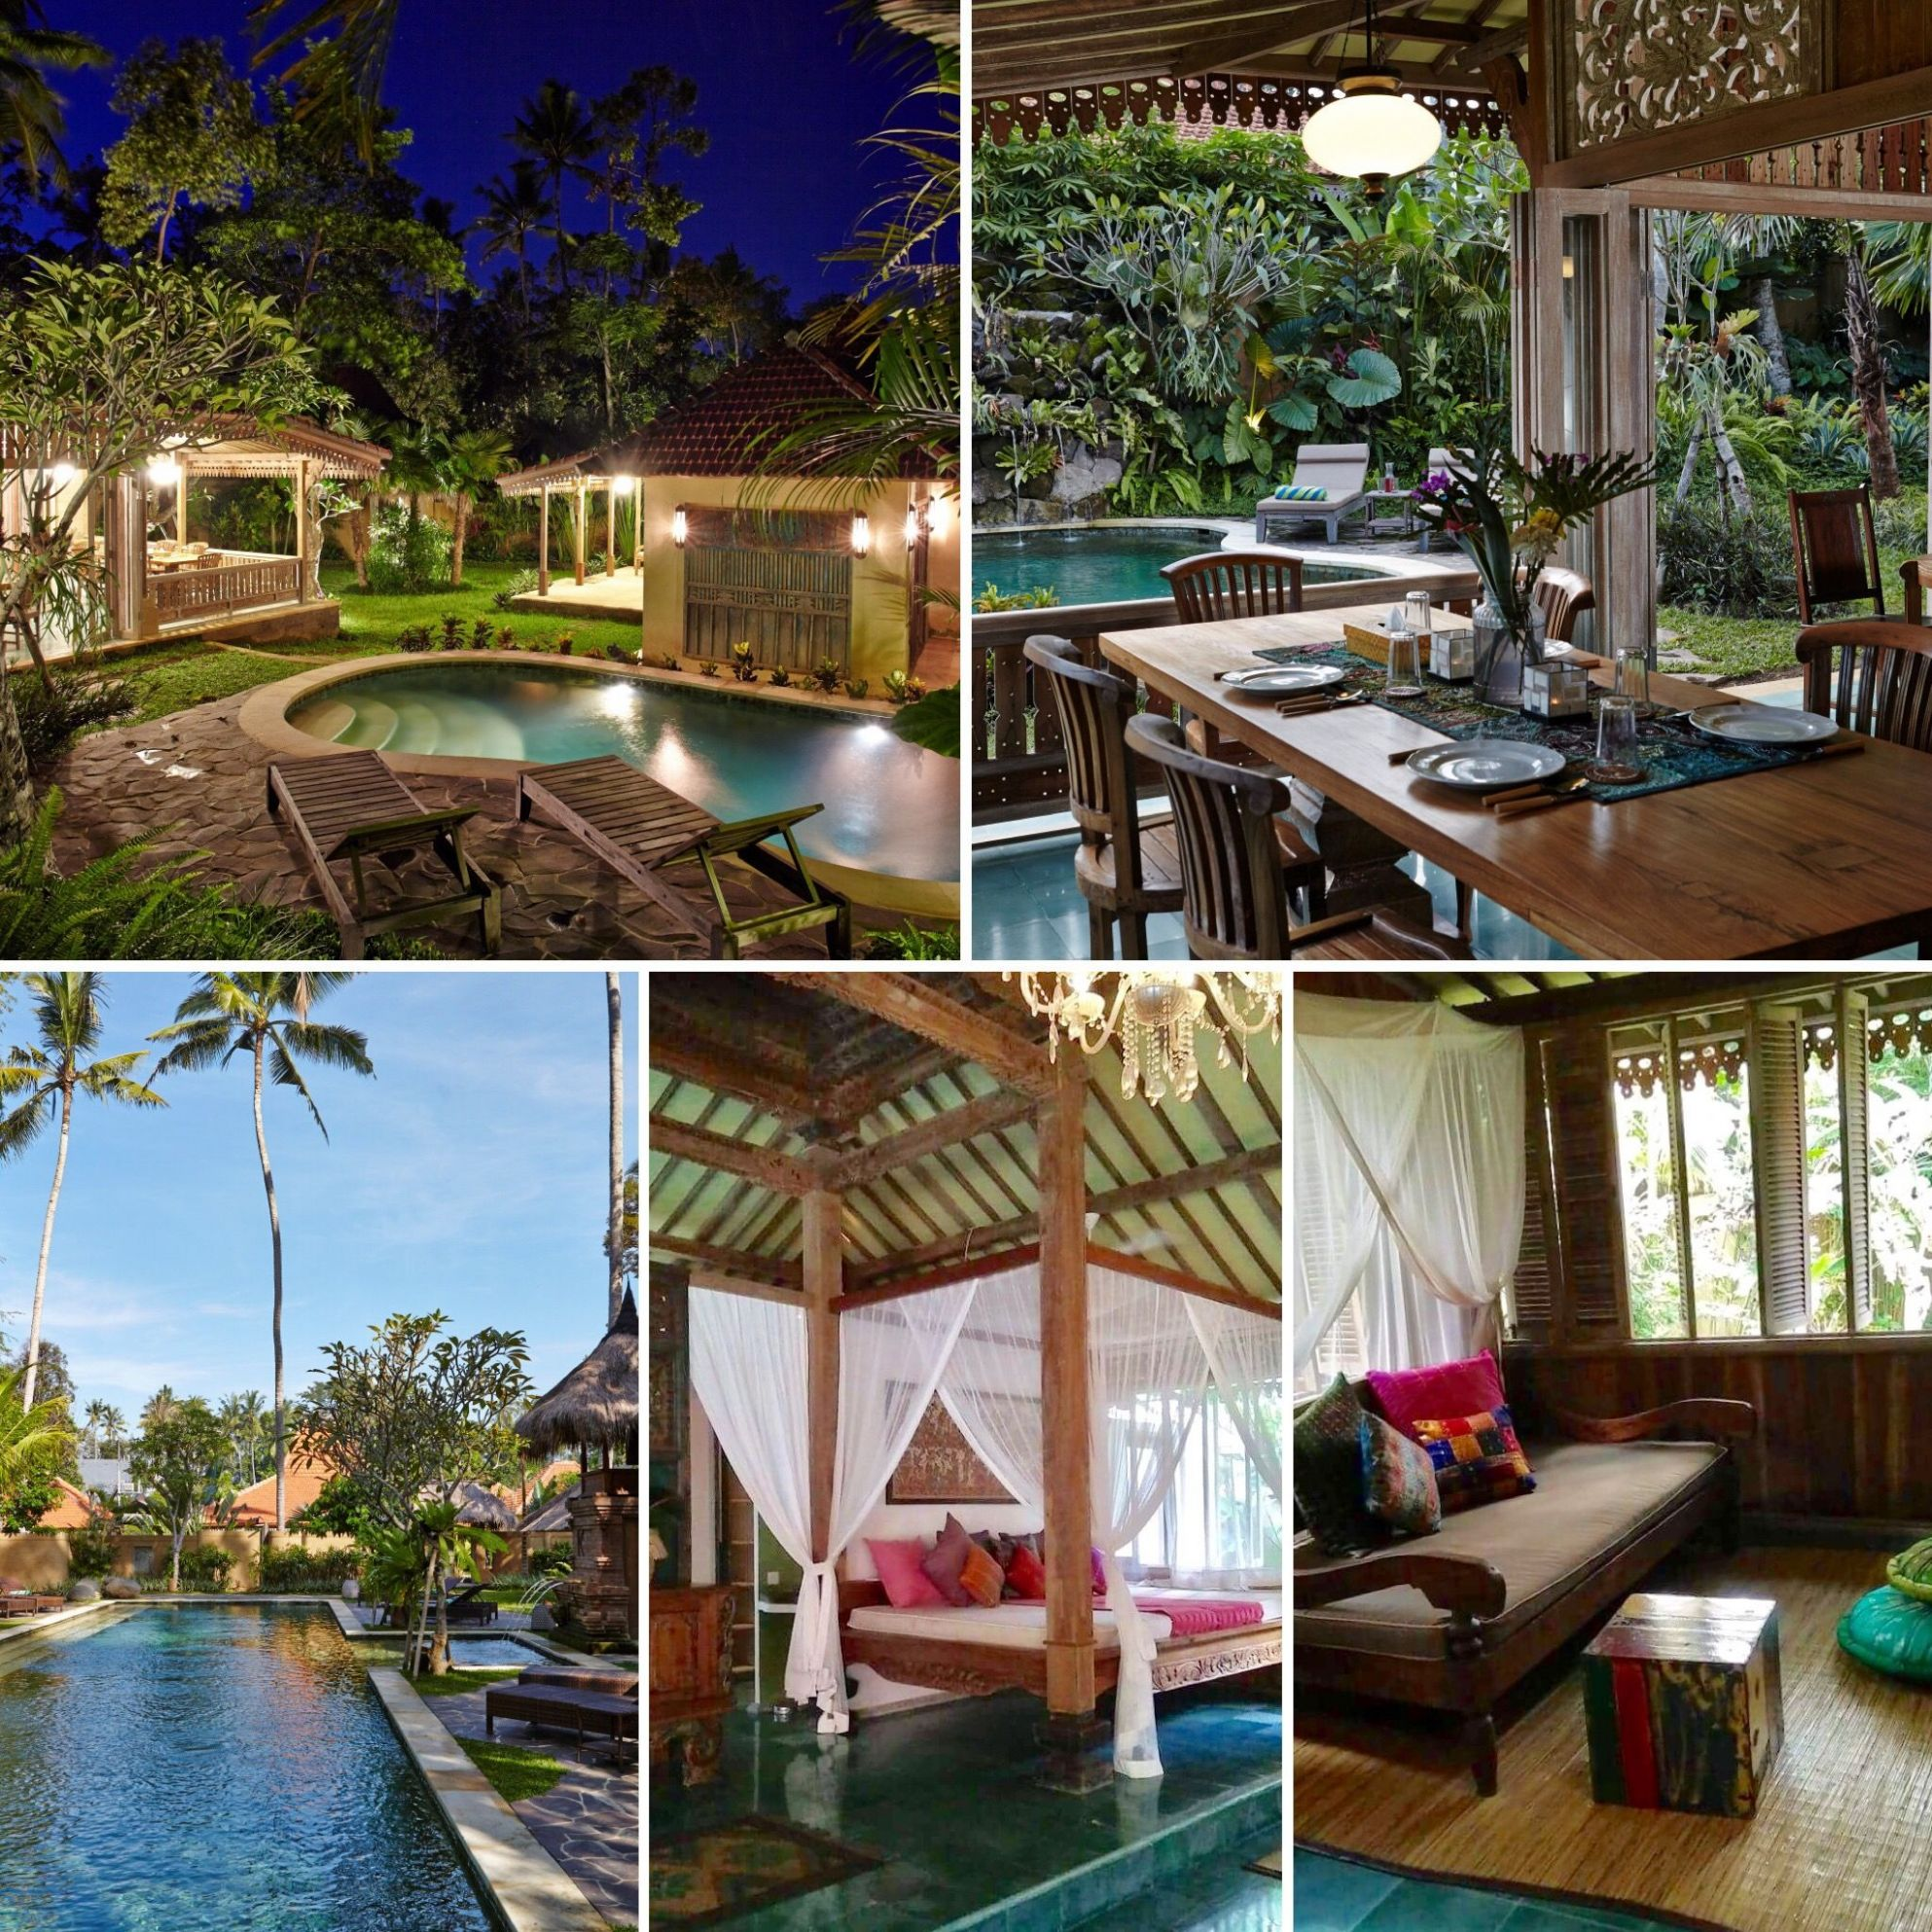 Villa Achintya, Ubud | Ubud, Outdoor bed, Outdoor decor - home decor ubud